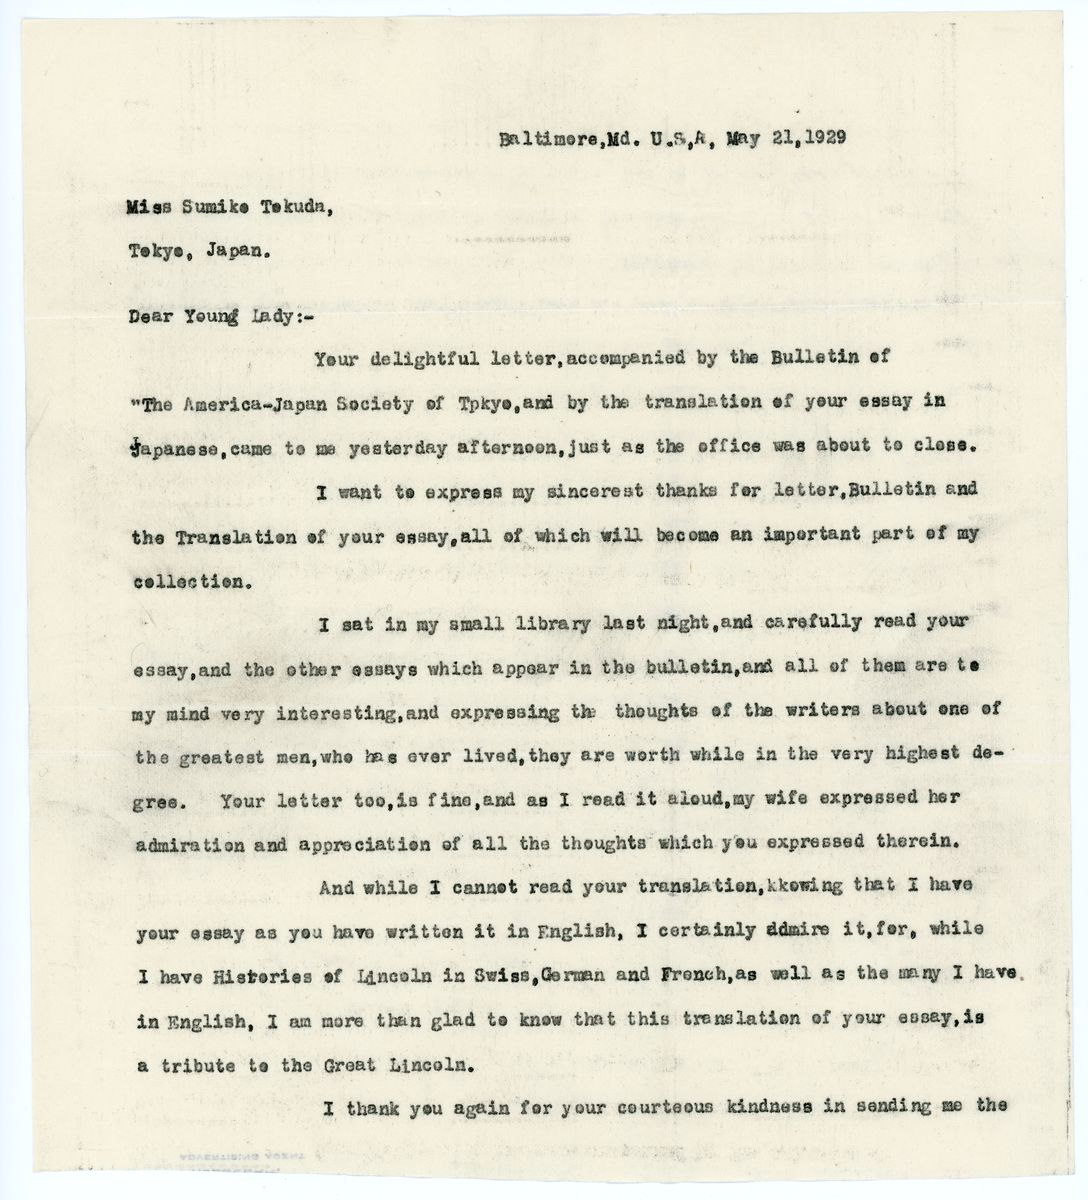 Image: Letter from E.L. Bangs to Sumiko Tokuda